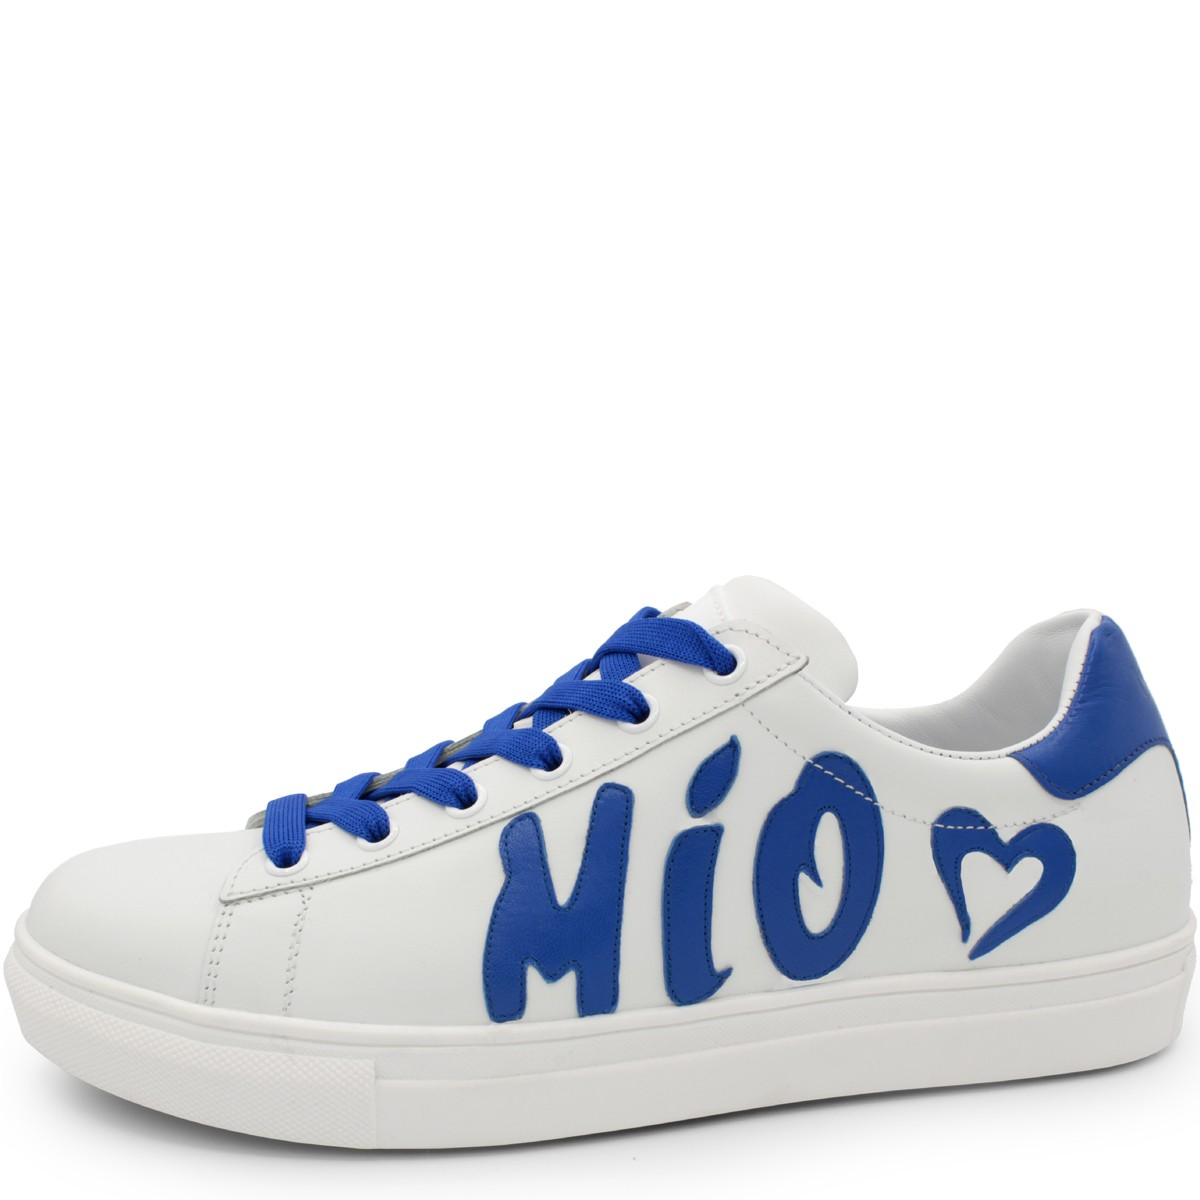 "WHITE & BLUE SNEAKERS ""AMORE MIO"""